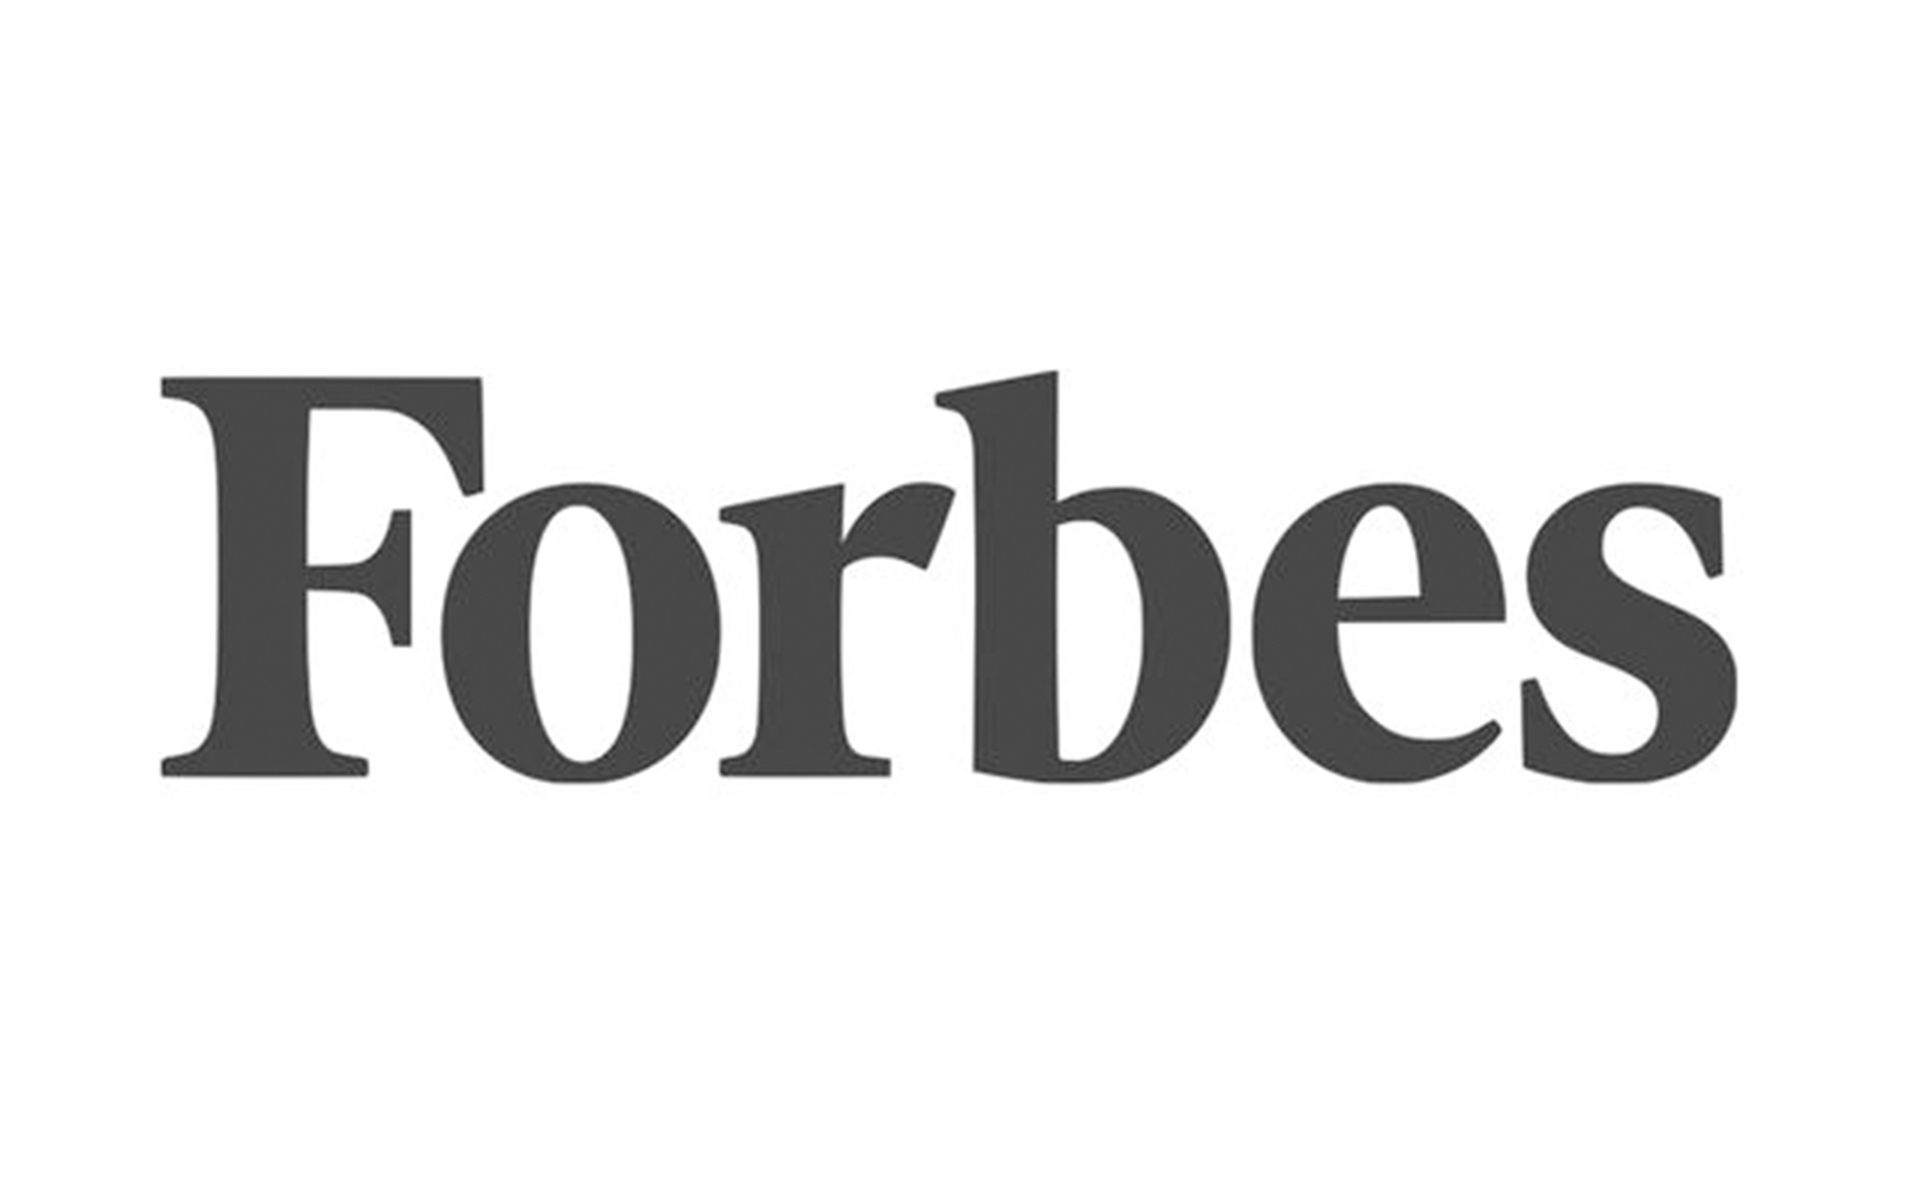 The picture shows the Forbes logo.